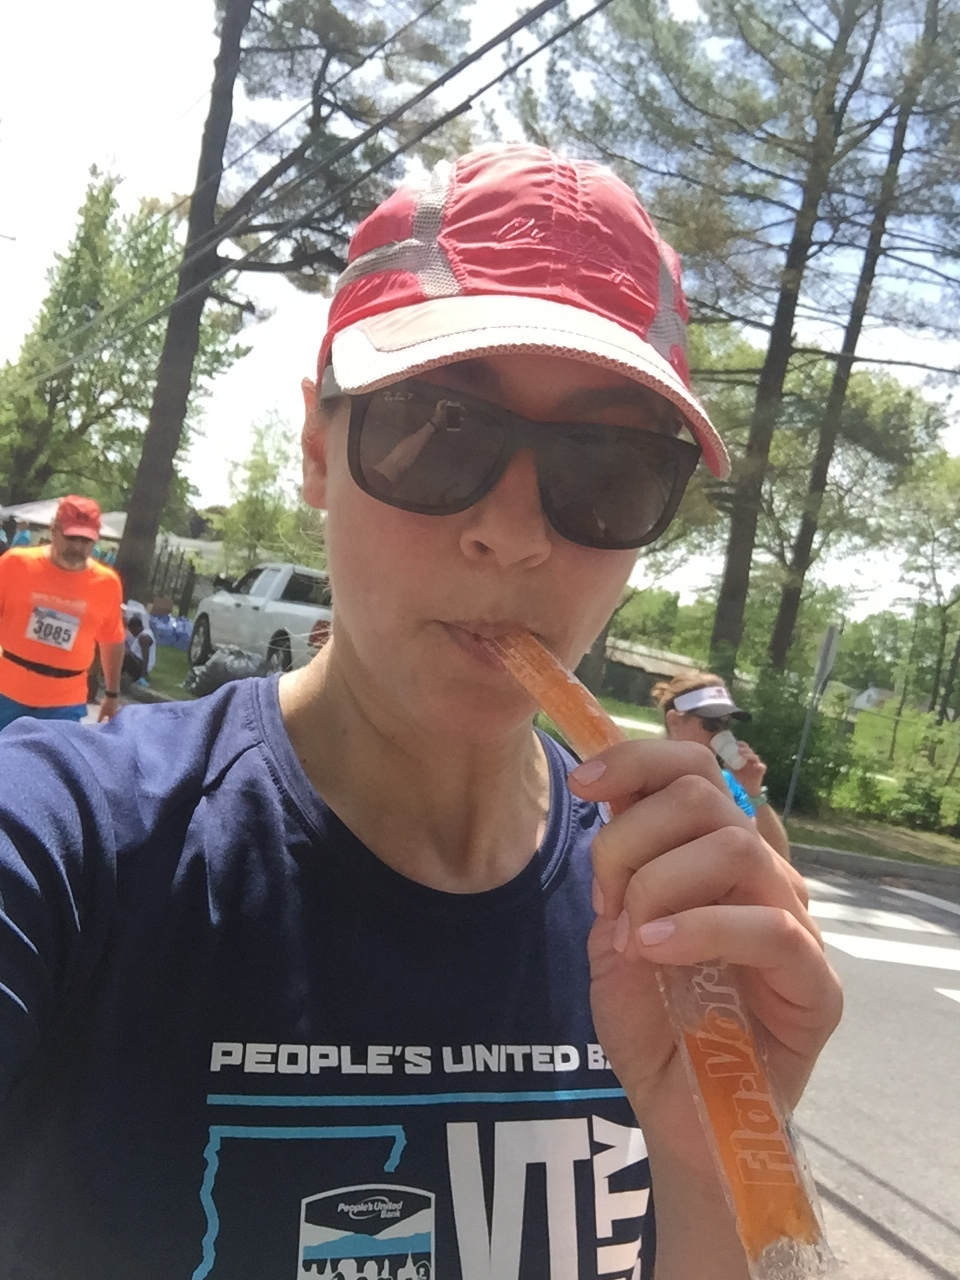 Let's not get too serious here...selfies and ice pops along the way :)